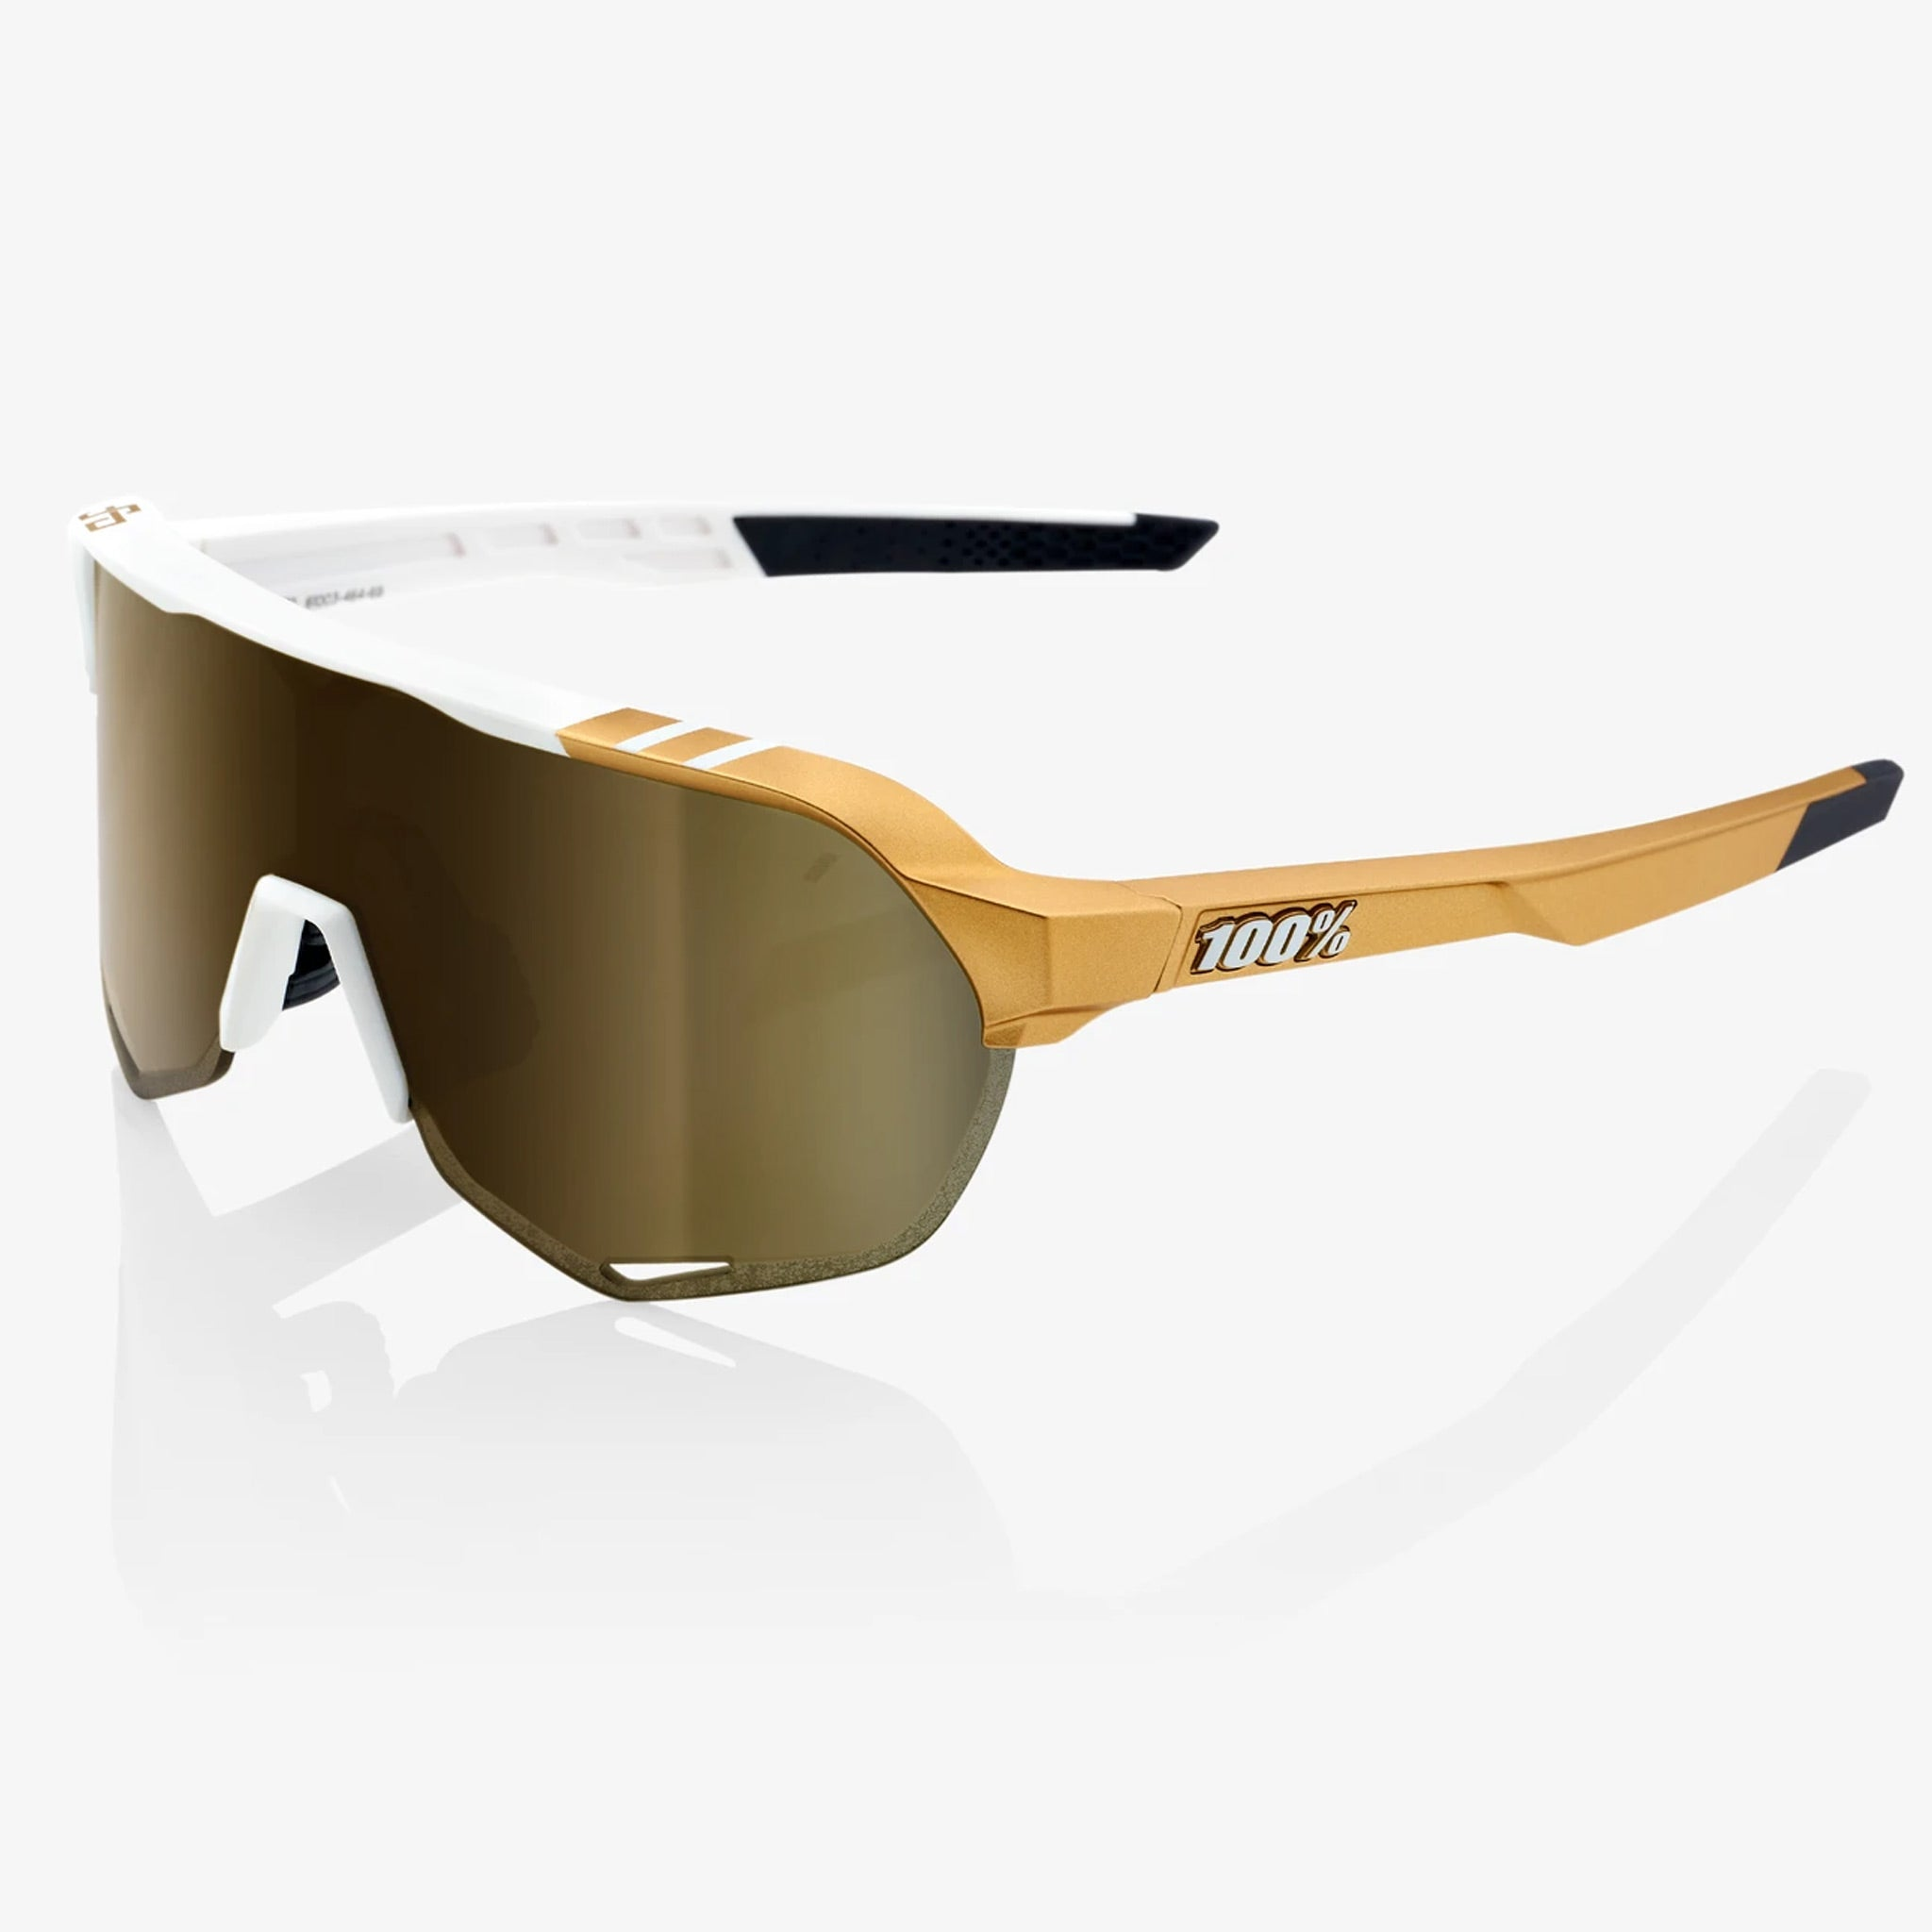 100% S2 Peter Sagan LE White Gold - Soft Gold Mirror Lens, Cycling Sunglasses buy online at Woolys Wheels Sydney